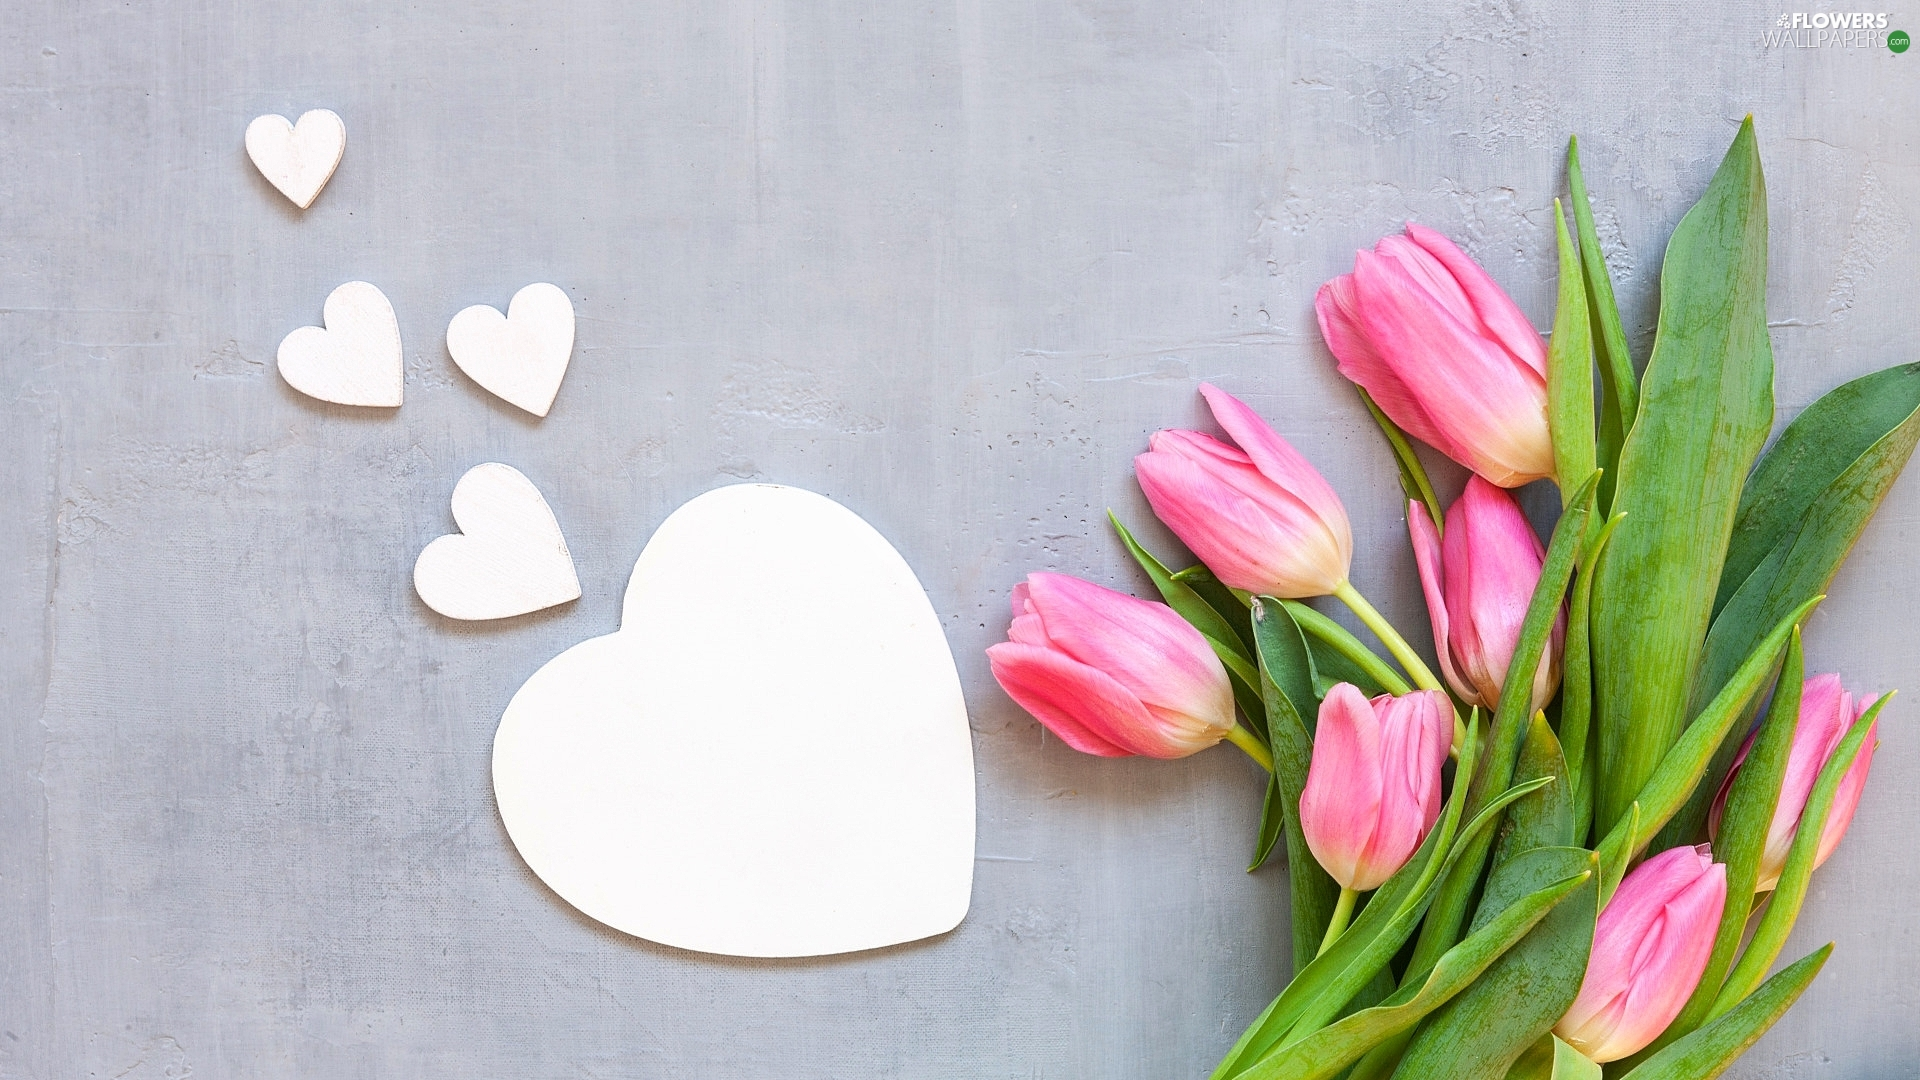 Tulips, Grey, background, heart